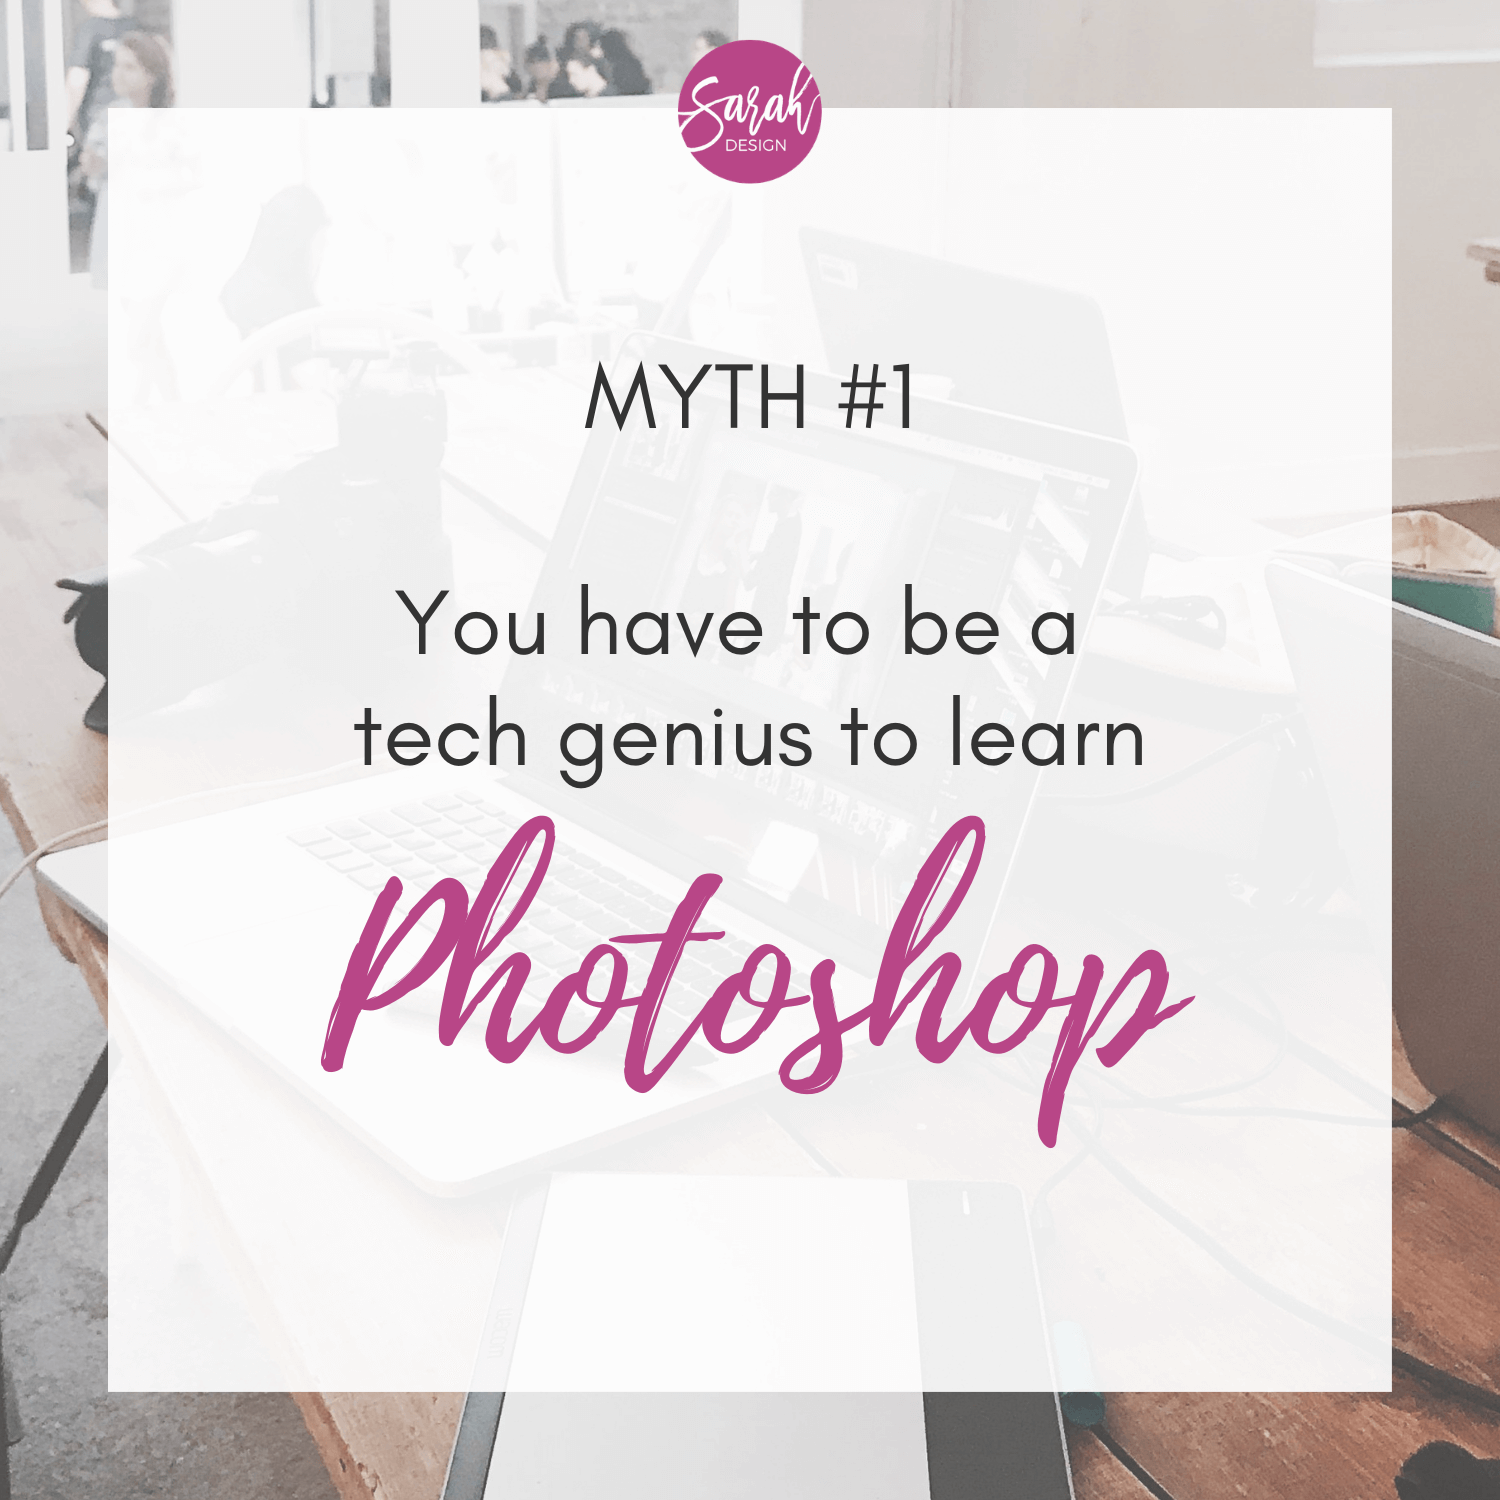 Myth: You have to be a tech genius to learn how to use Photoshop. By SarahDesign.com.